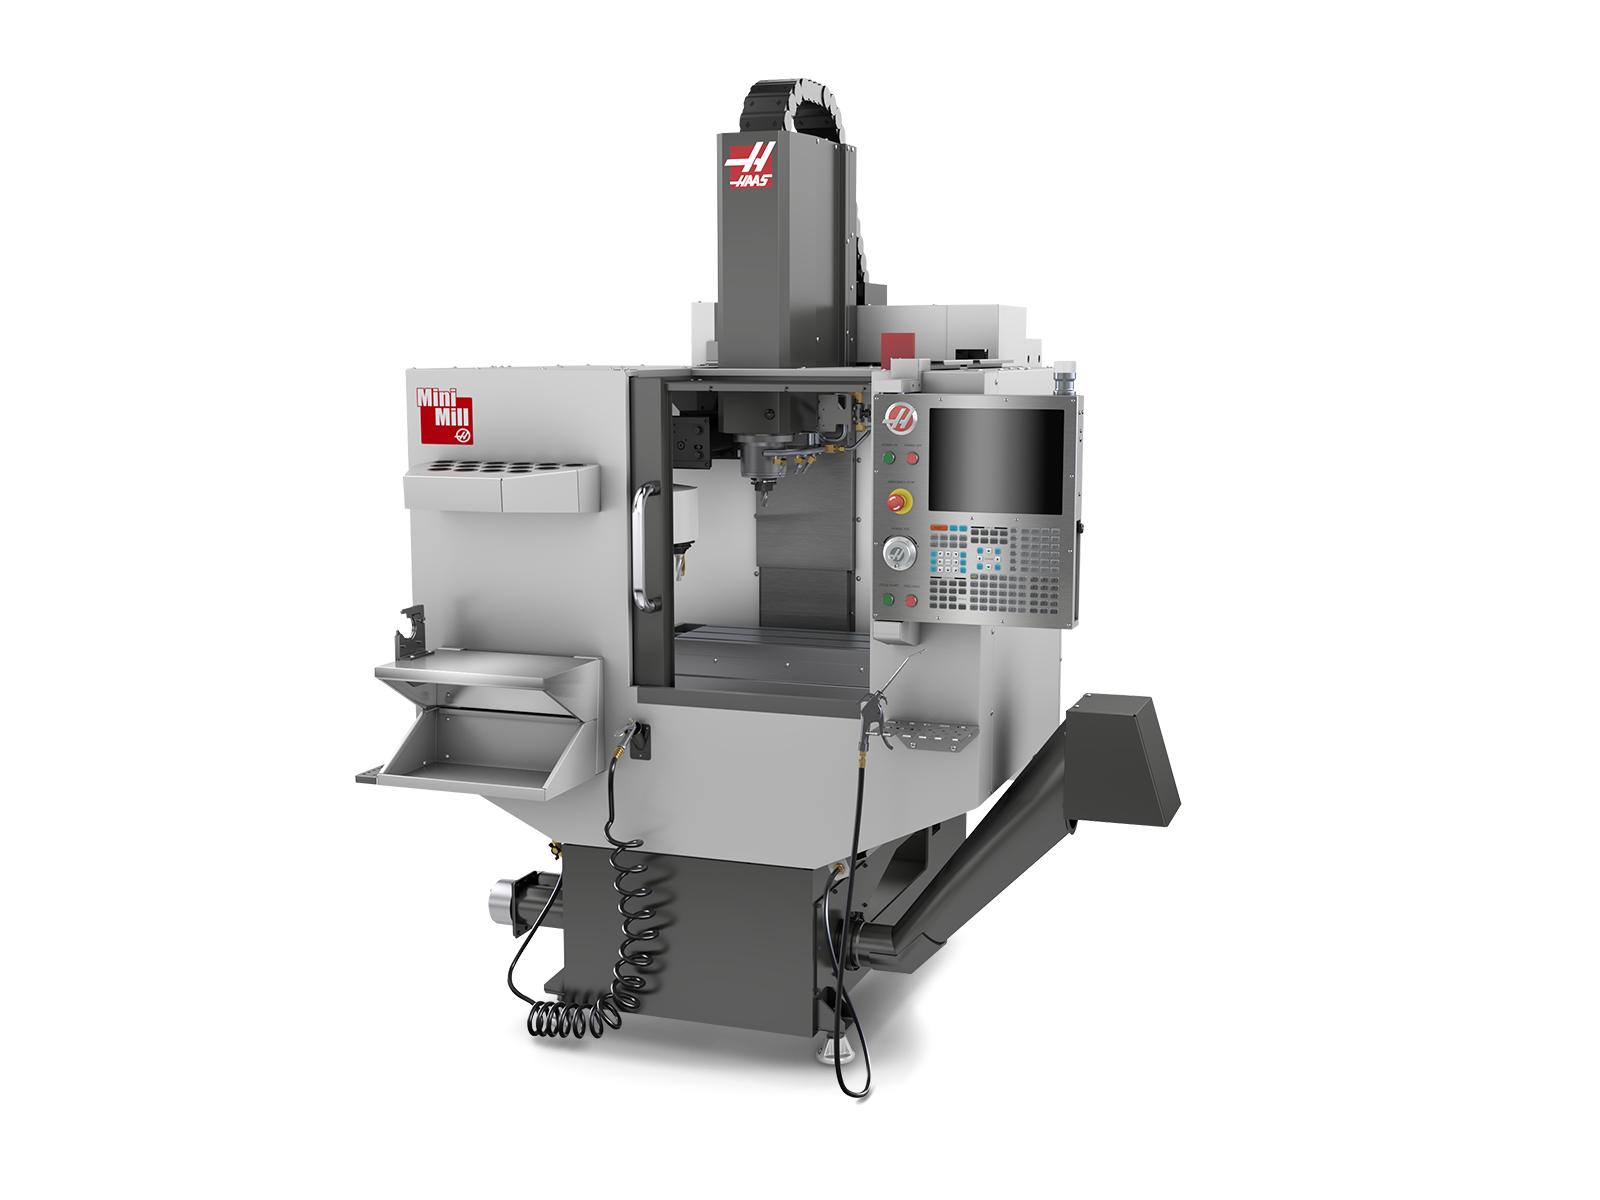 Haas Mini Mill CNC Machine